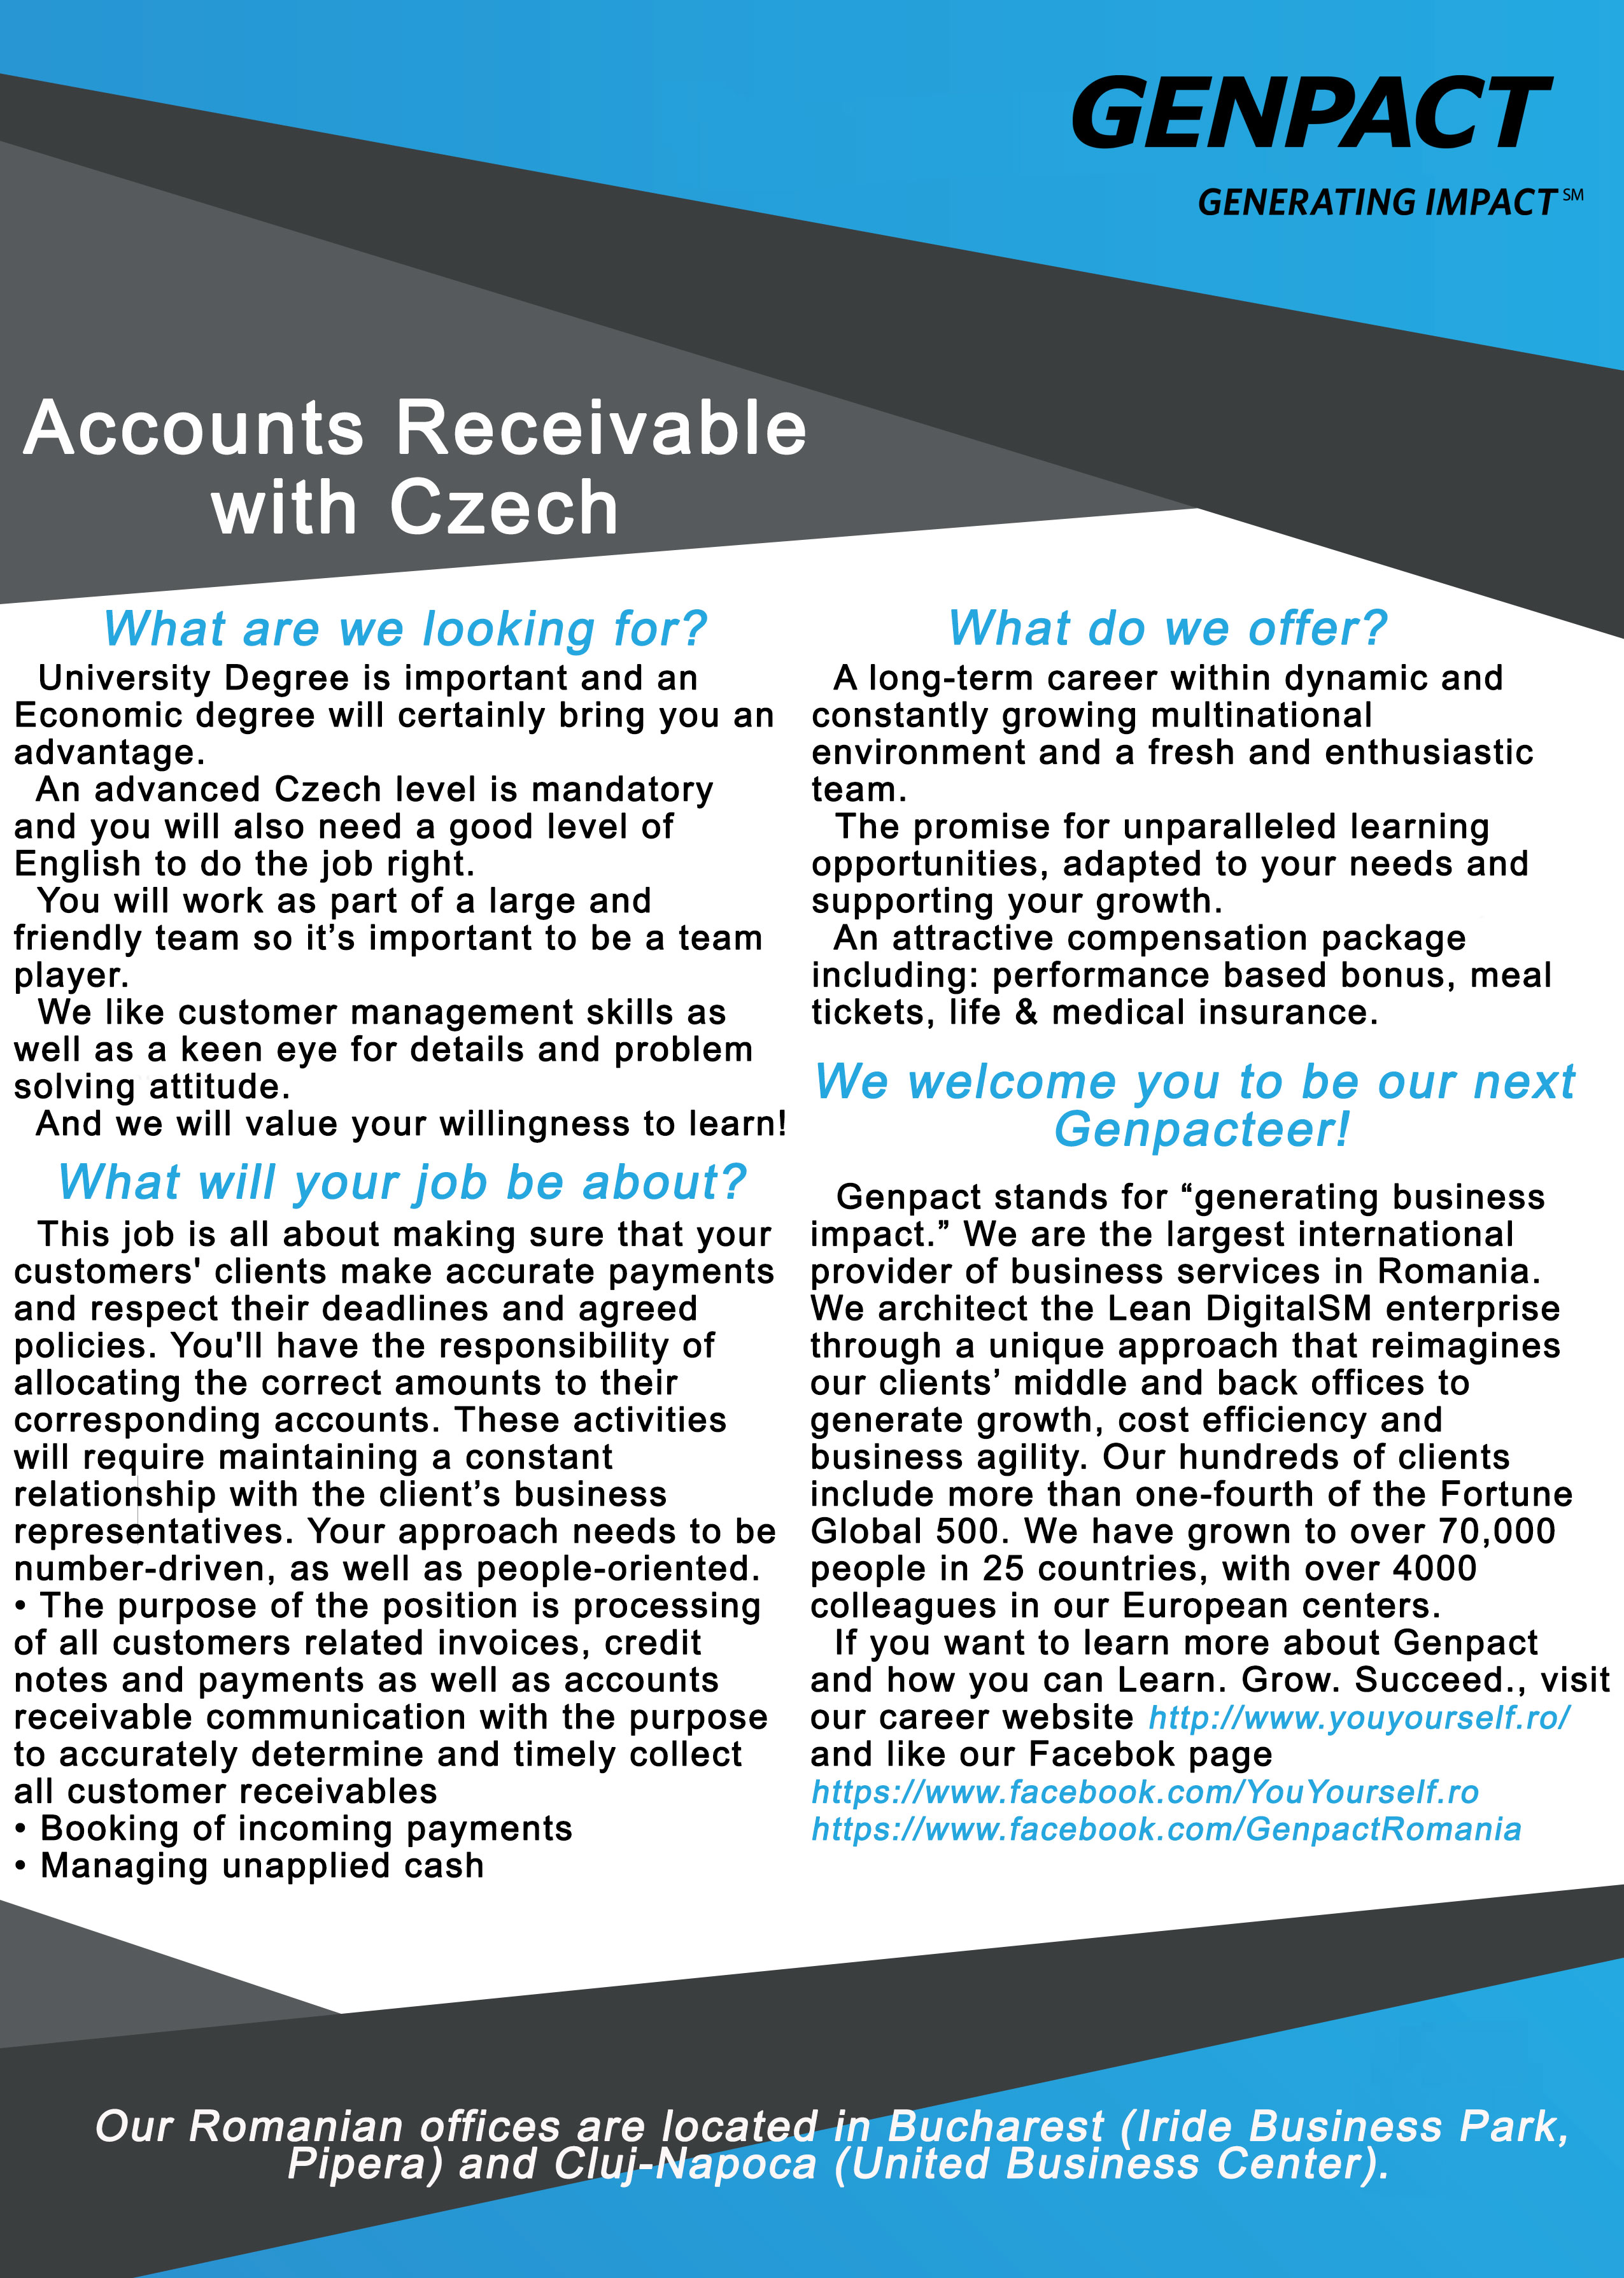 Accounts Receivable with Czech